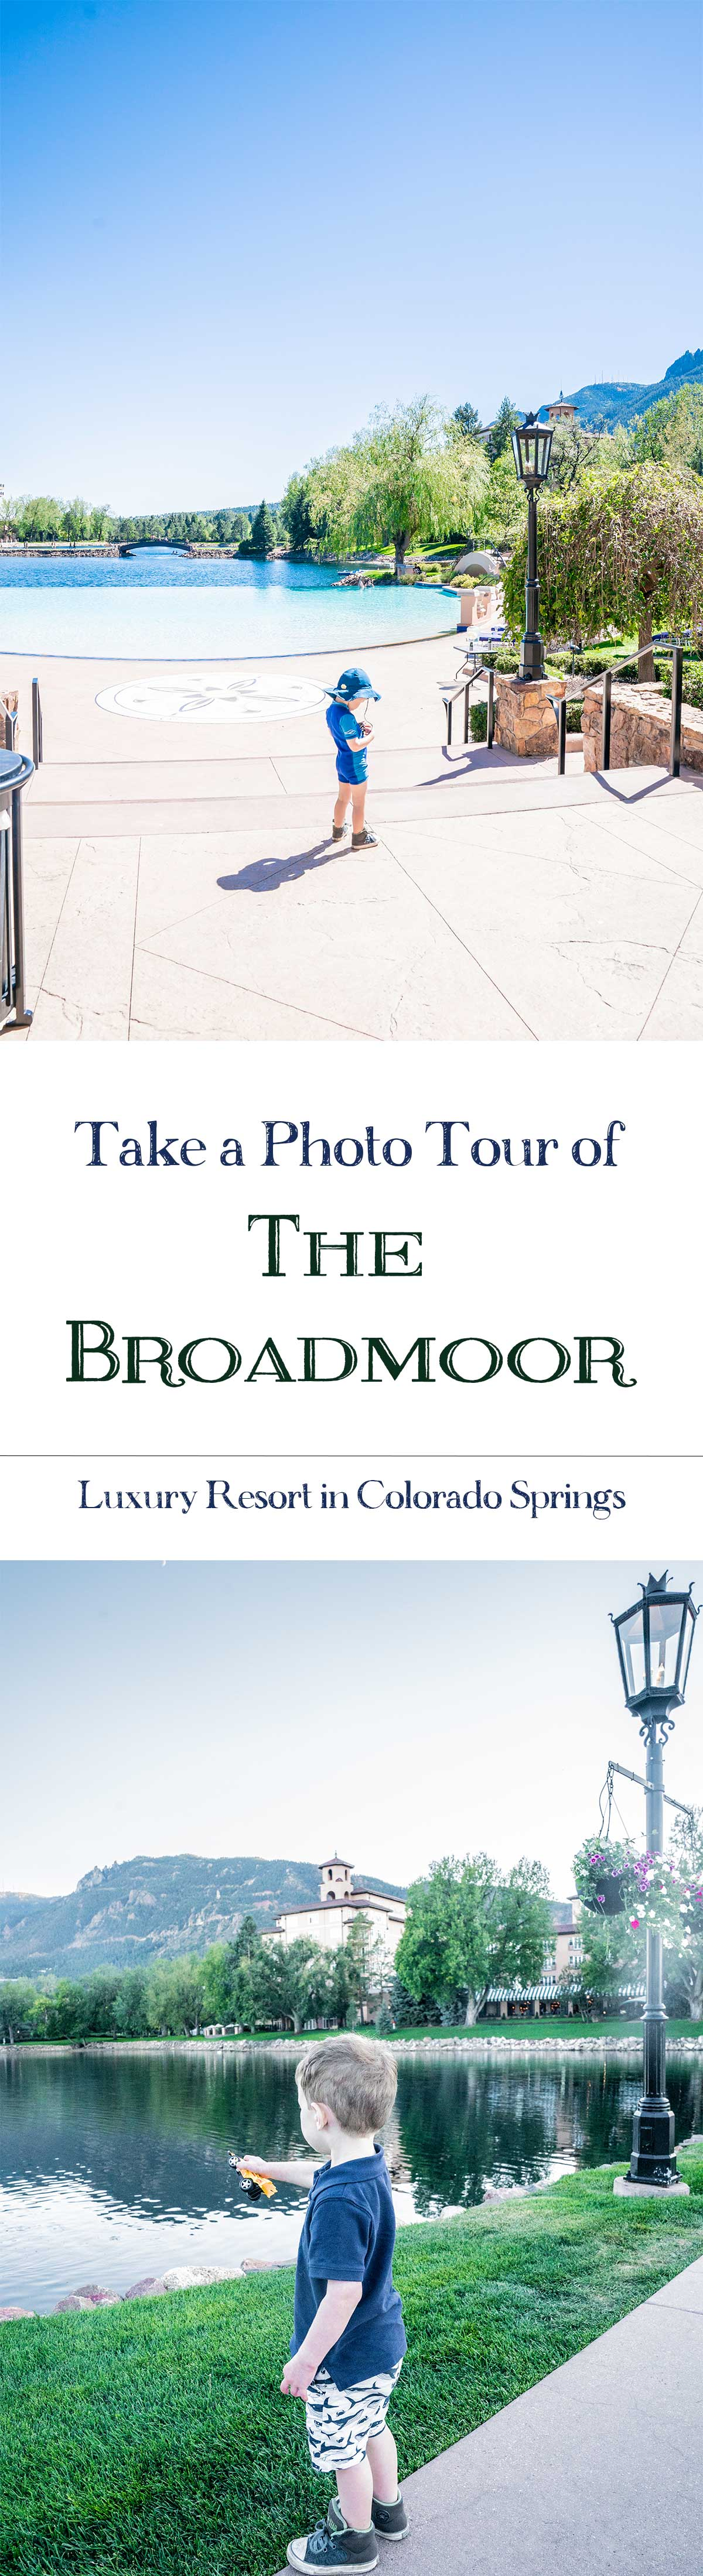 Take-a-Photo-Tour-of-The-Broadmoor-Luxury-Resort-in-Colorado-Springs